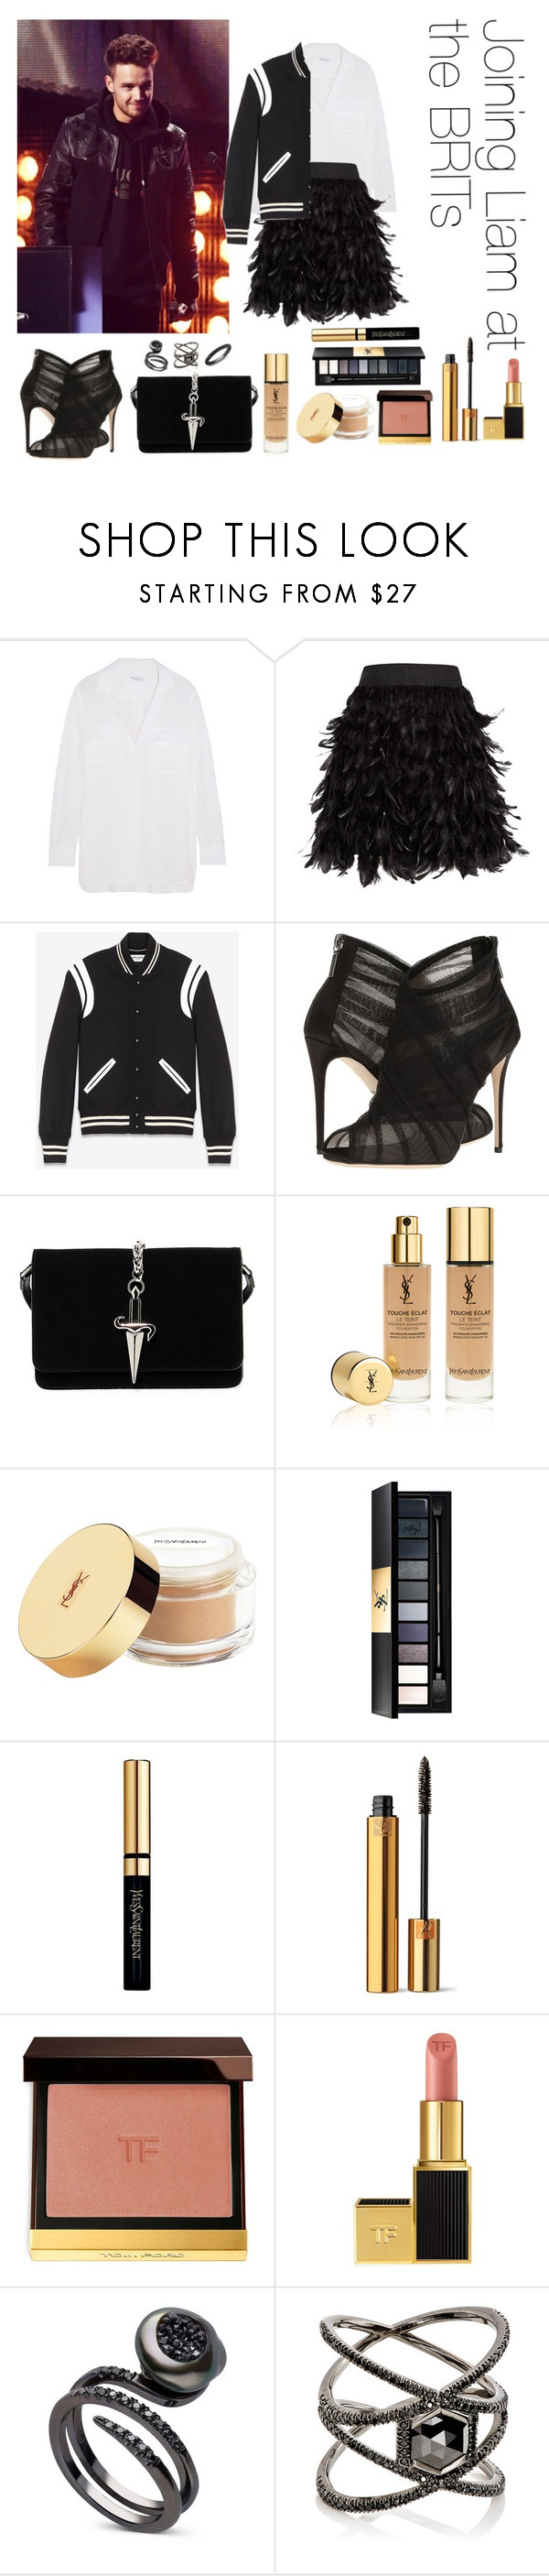 """""""Joining Liam at the BRITs"""" by thetrendpear-eleanor ❤ liked on Polyvore featuring Equipment, Alice + Olivia, Yves Saint Laurent, Dolce&Gabbana, Cesare Paciotti, Tom Ford, Eva Fehren and Anne Sisteron"""